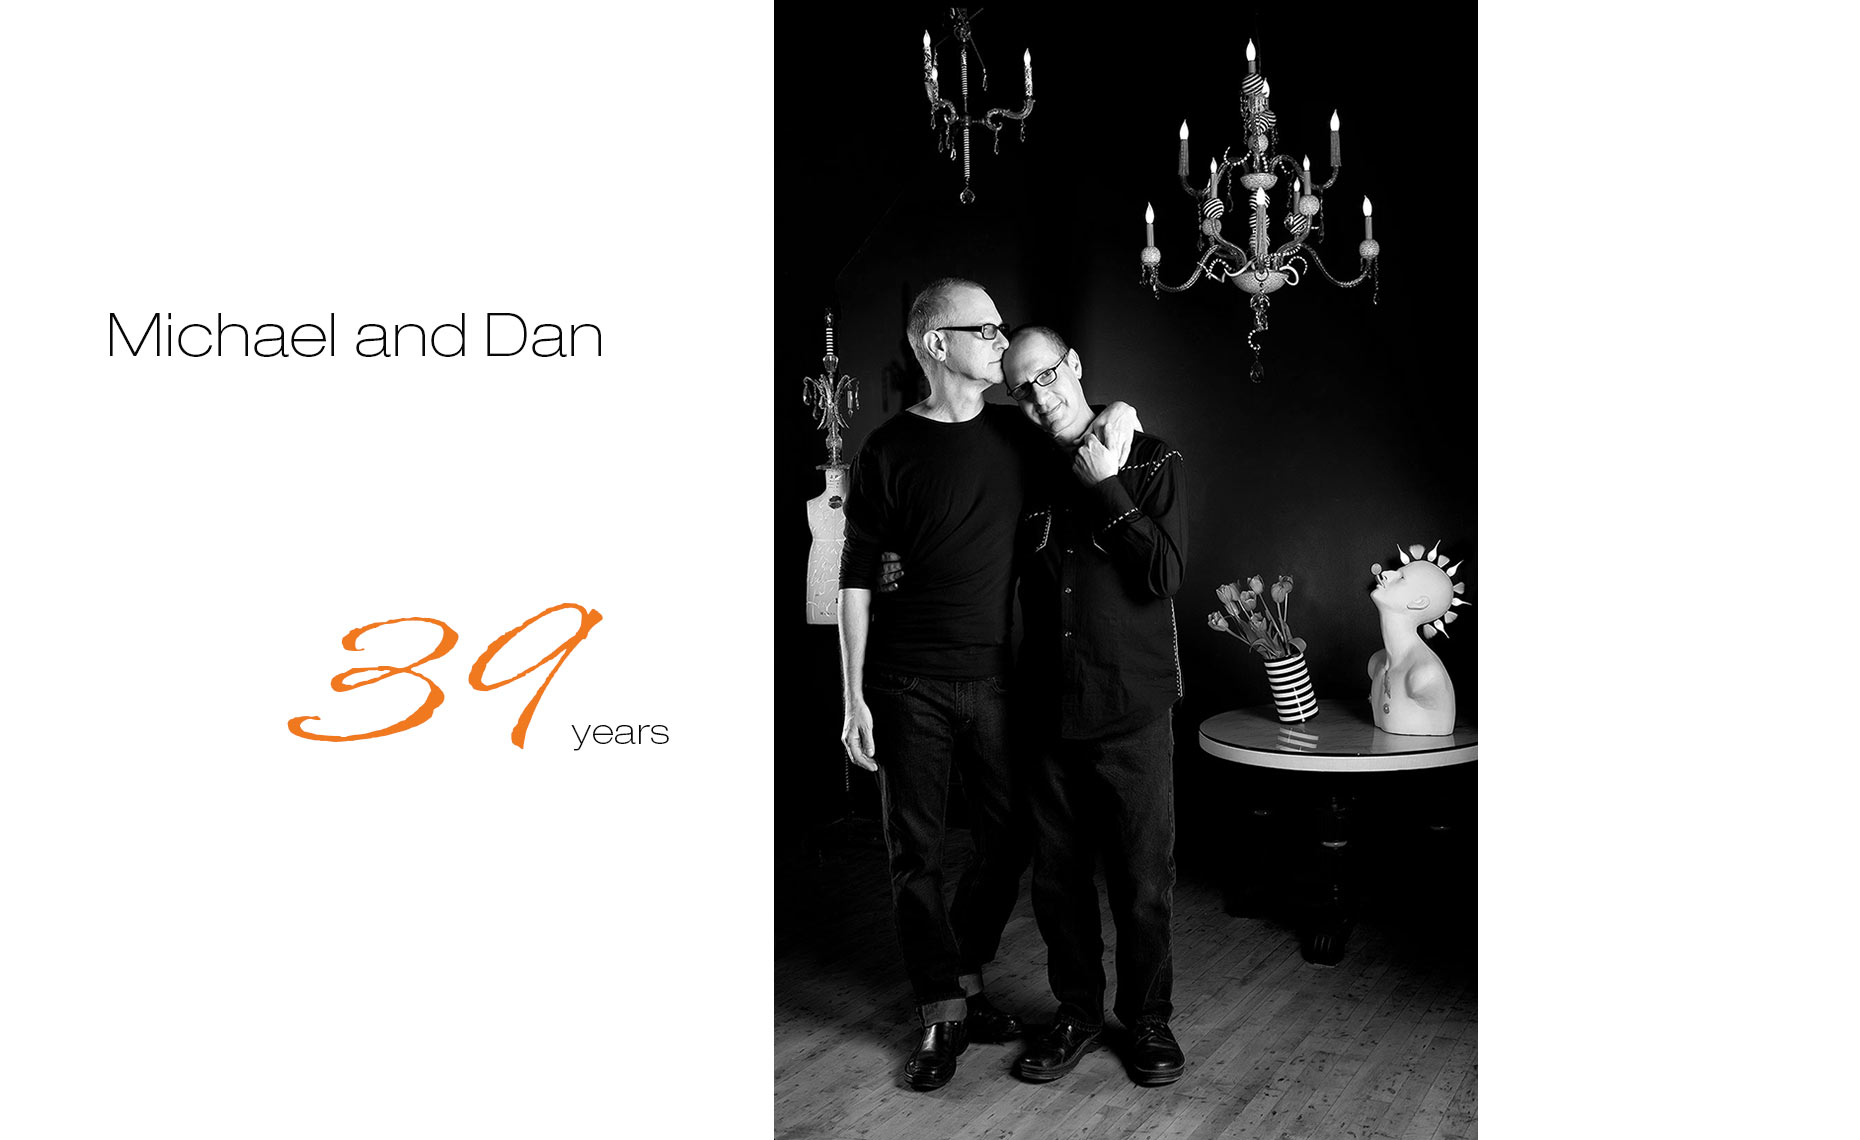 MichaelandDan_39yrs